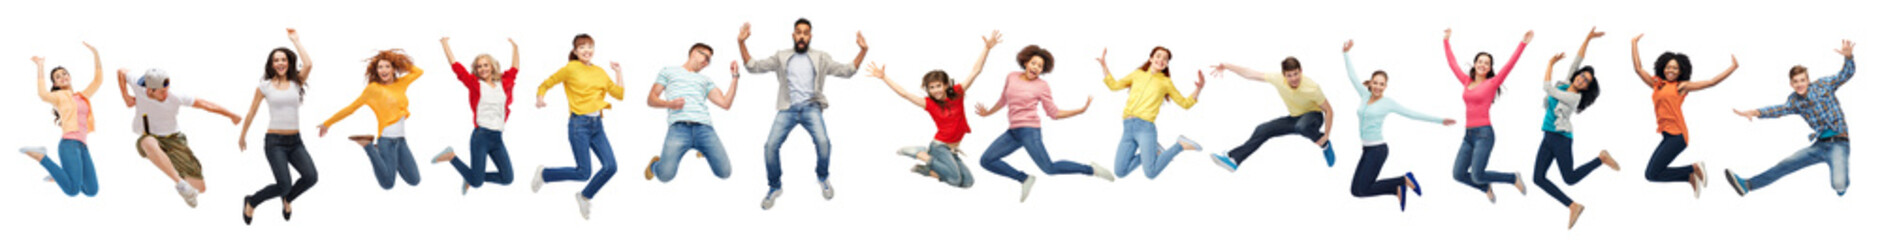 happiness, freedom, motion and diversity concept - happy people jumping in air over white background